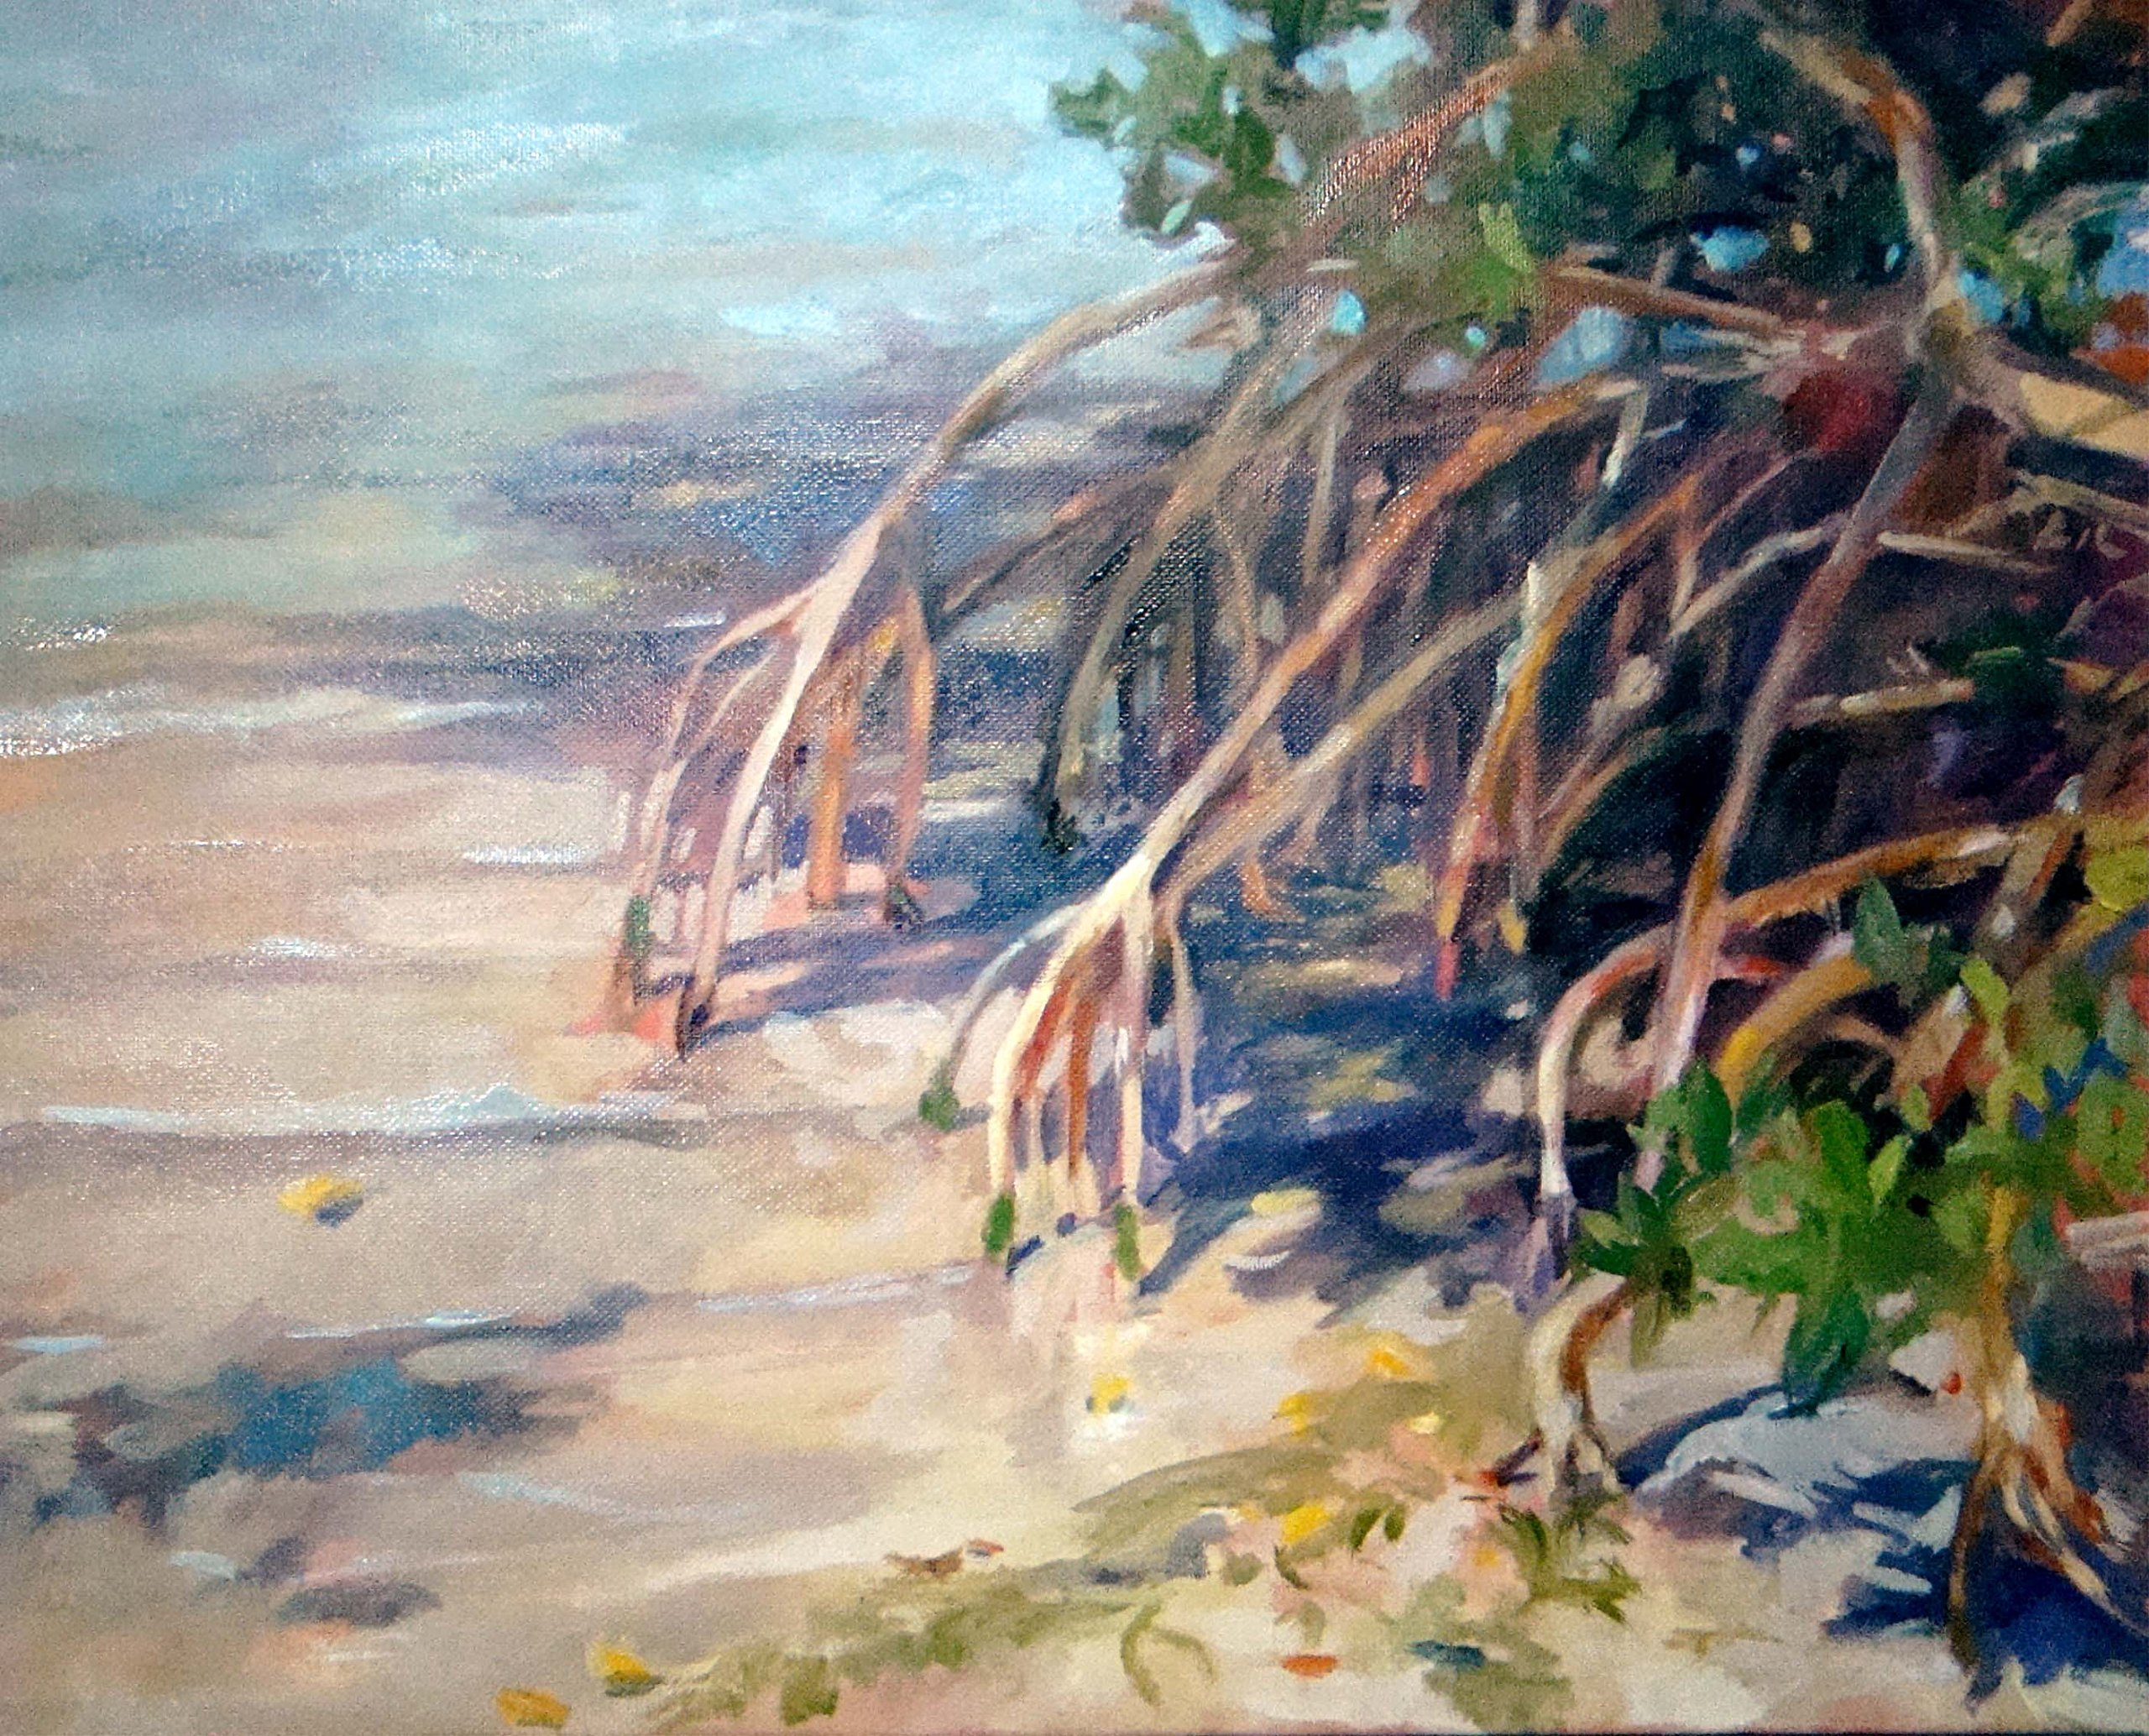 For the Love of Mangroves by